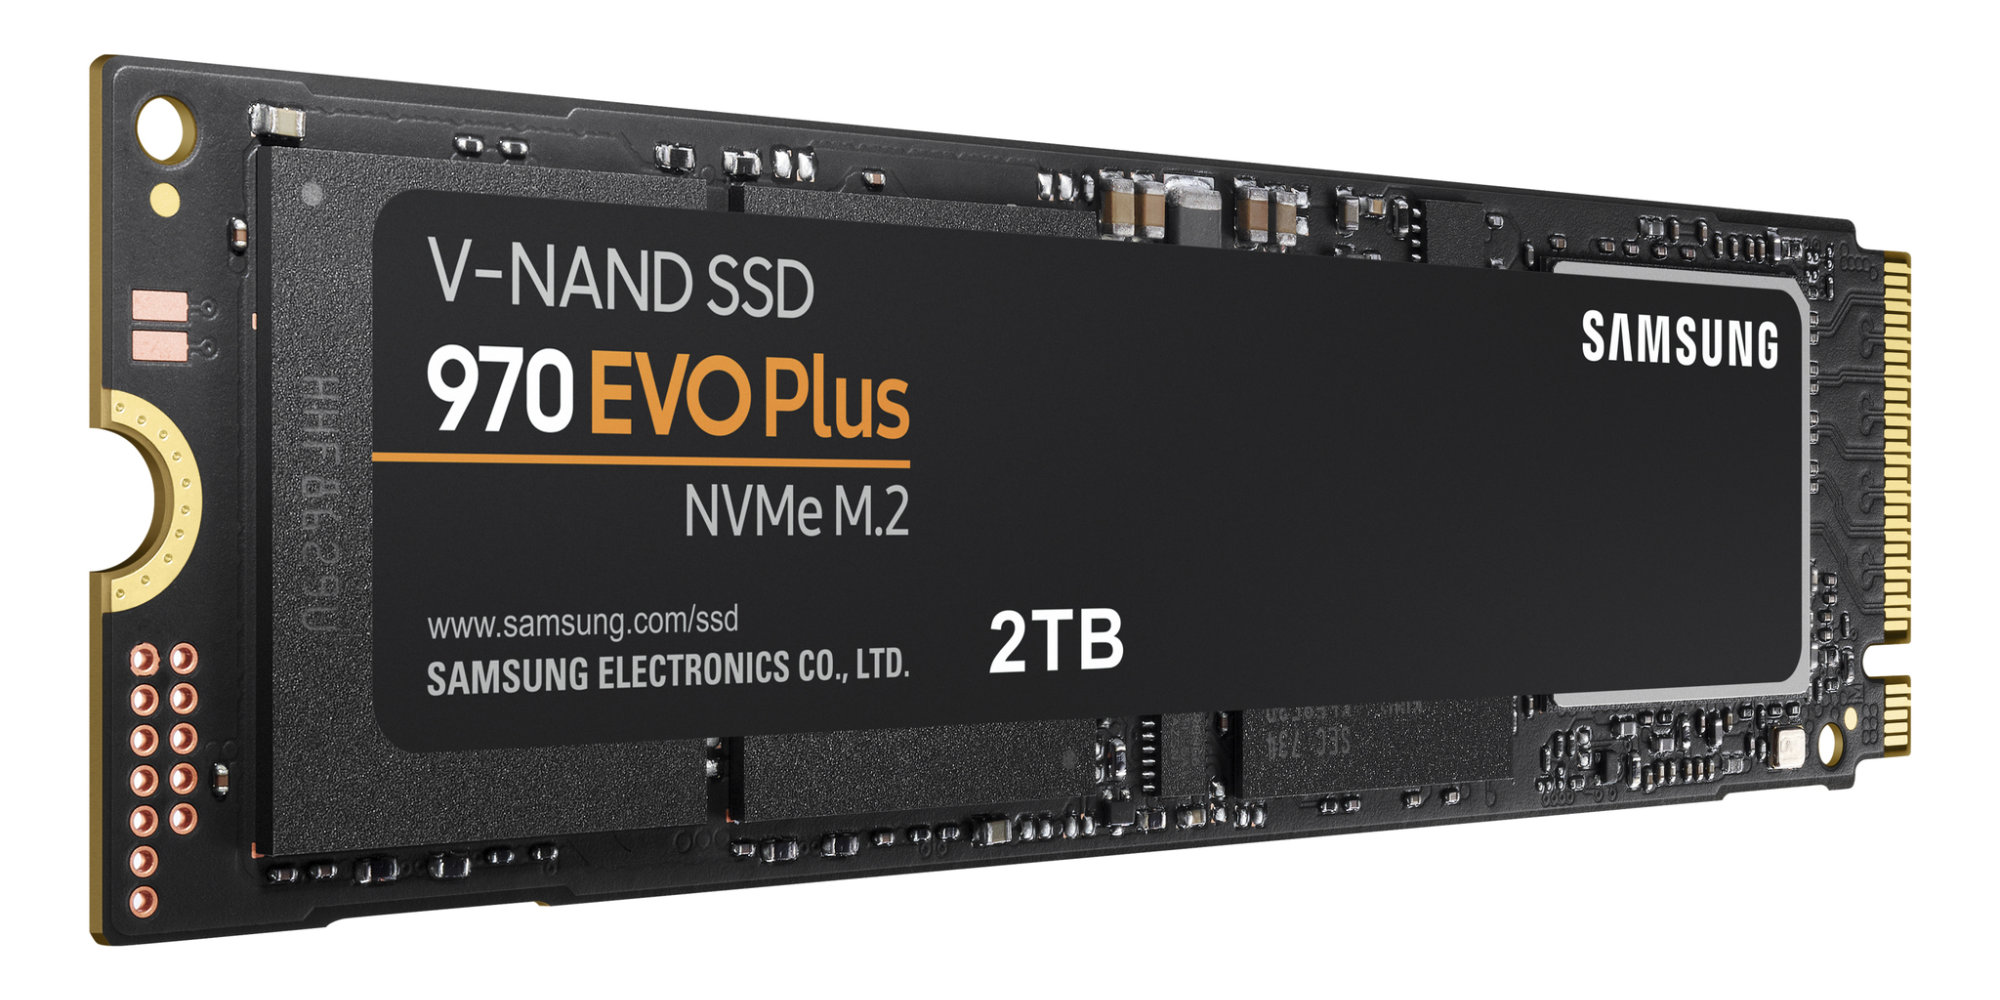 Samsung's new 970 EVO Plus SSD beats its predecessor's write speeds by up to 53 percent